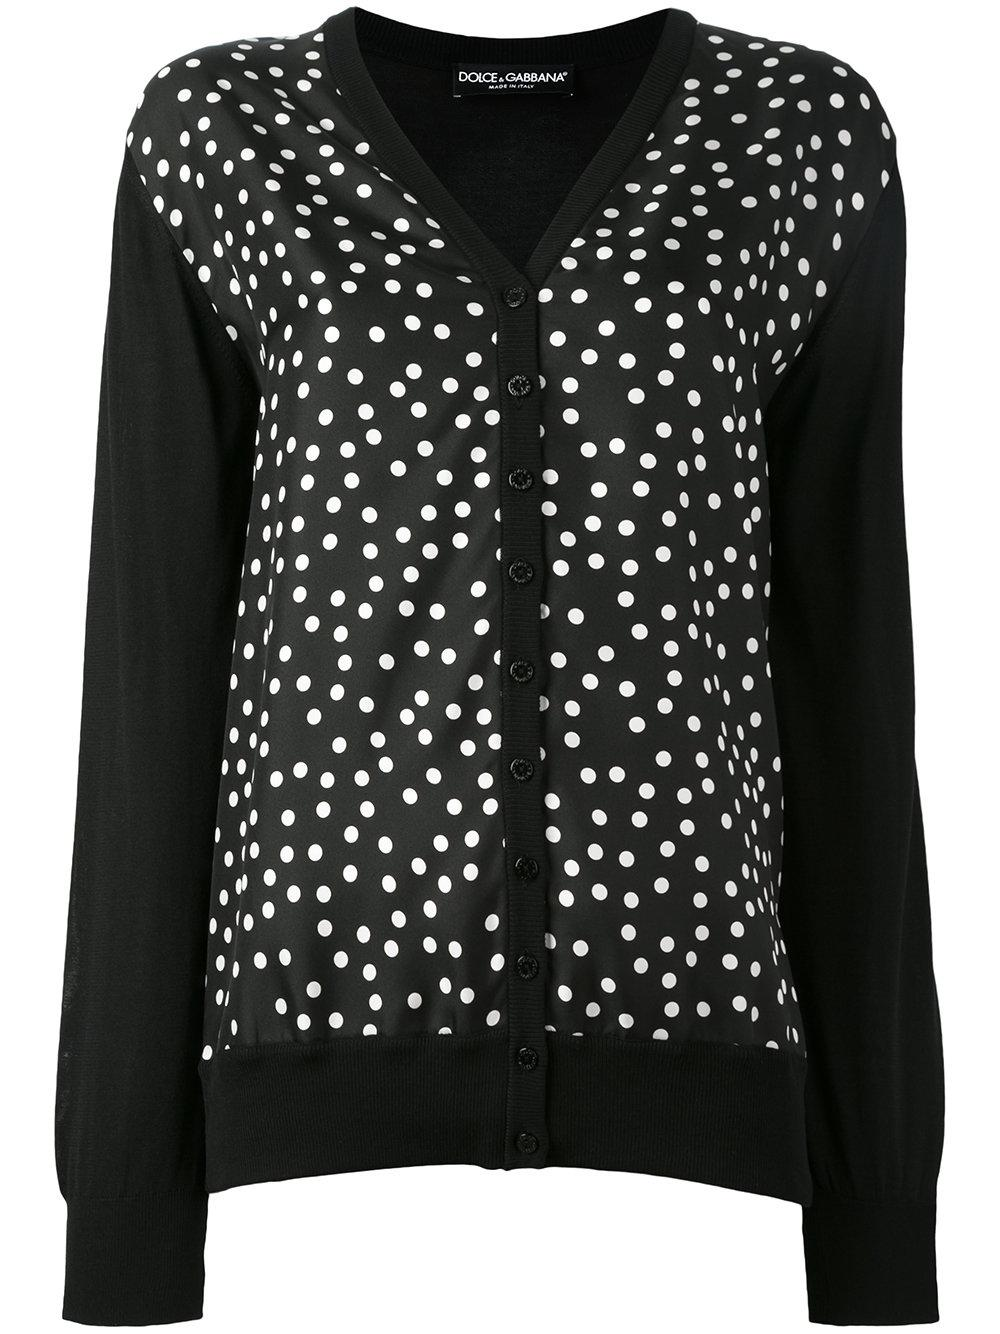 White and Black Polka Dot Cardigan - Polka dot Cardigan, Relaxed Cardigan, Polka dots AvaGraceClothing. 5 out of 5 stars (50) $ Favorite Add to See similar Black polka dot kimono cardigan,kimono jacket,chiffon vest Senamon. 5 out of 5 stars (31) .